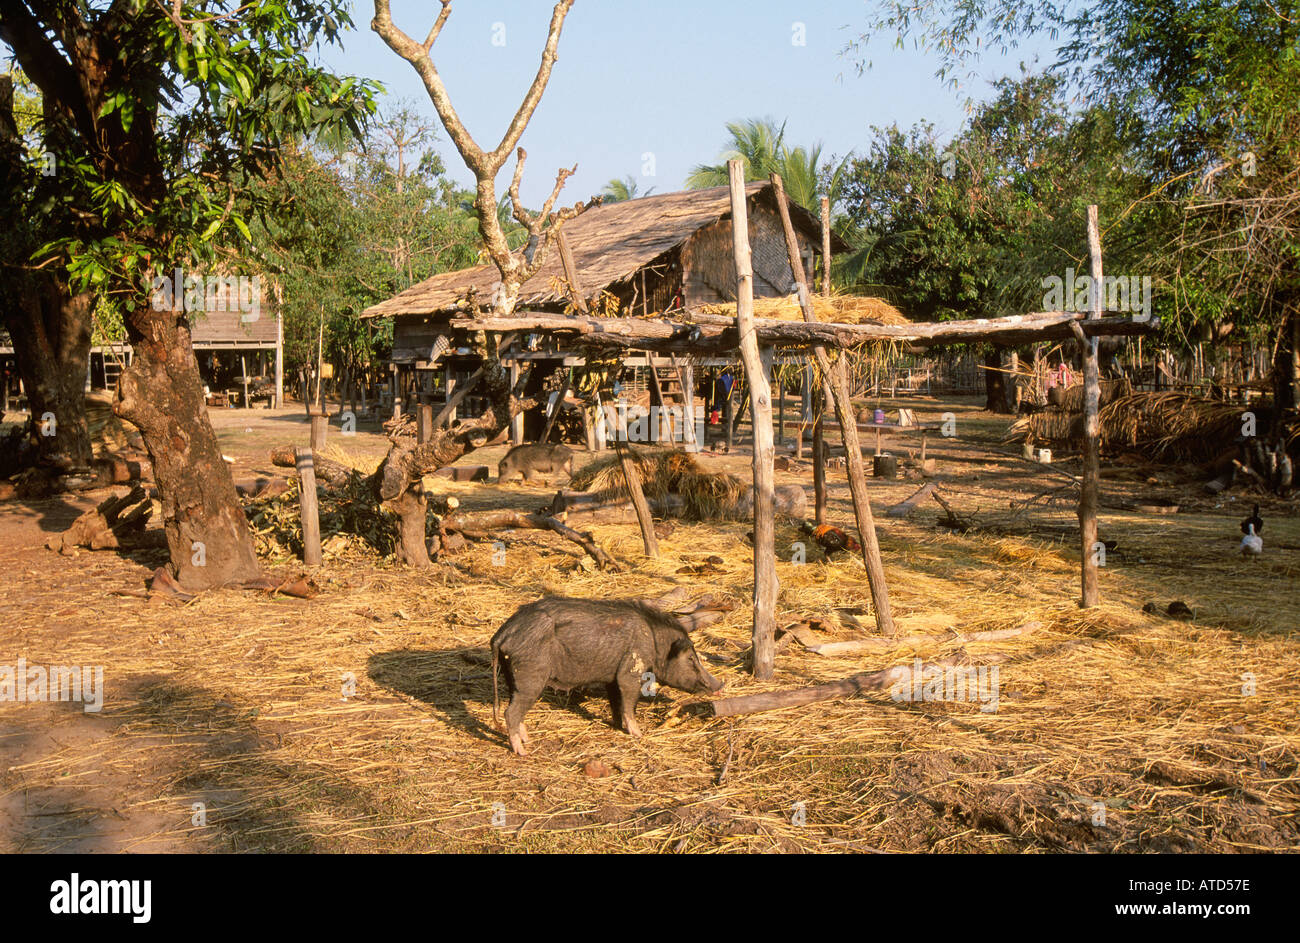 Pig in font of new wooden house in remote forest village southern laos